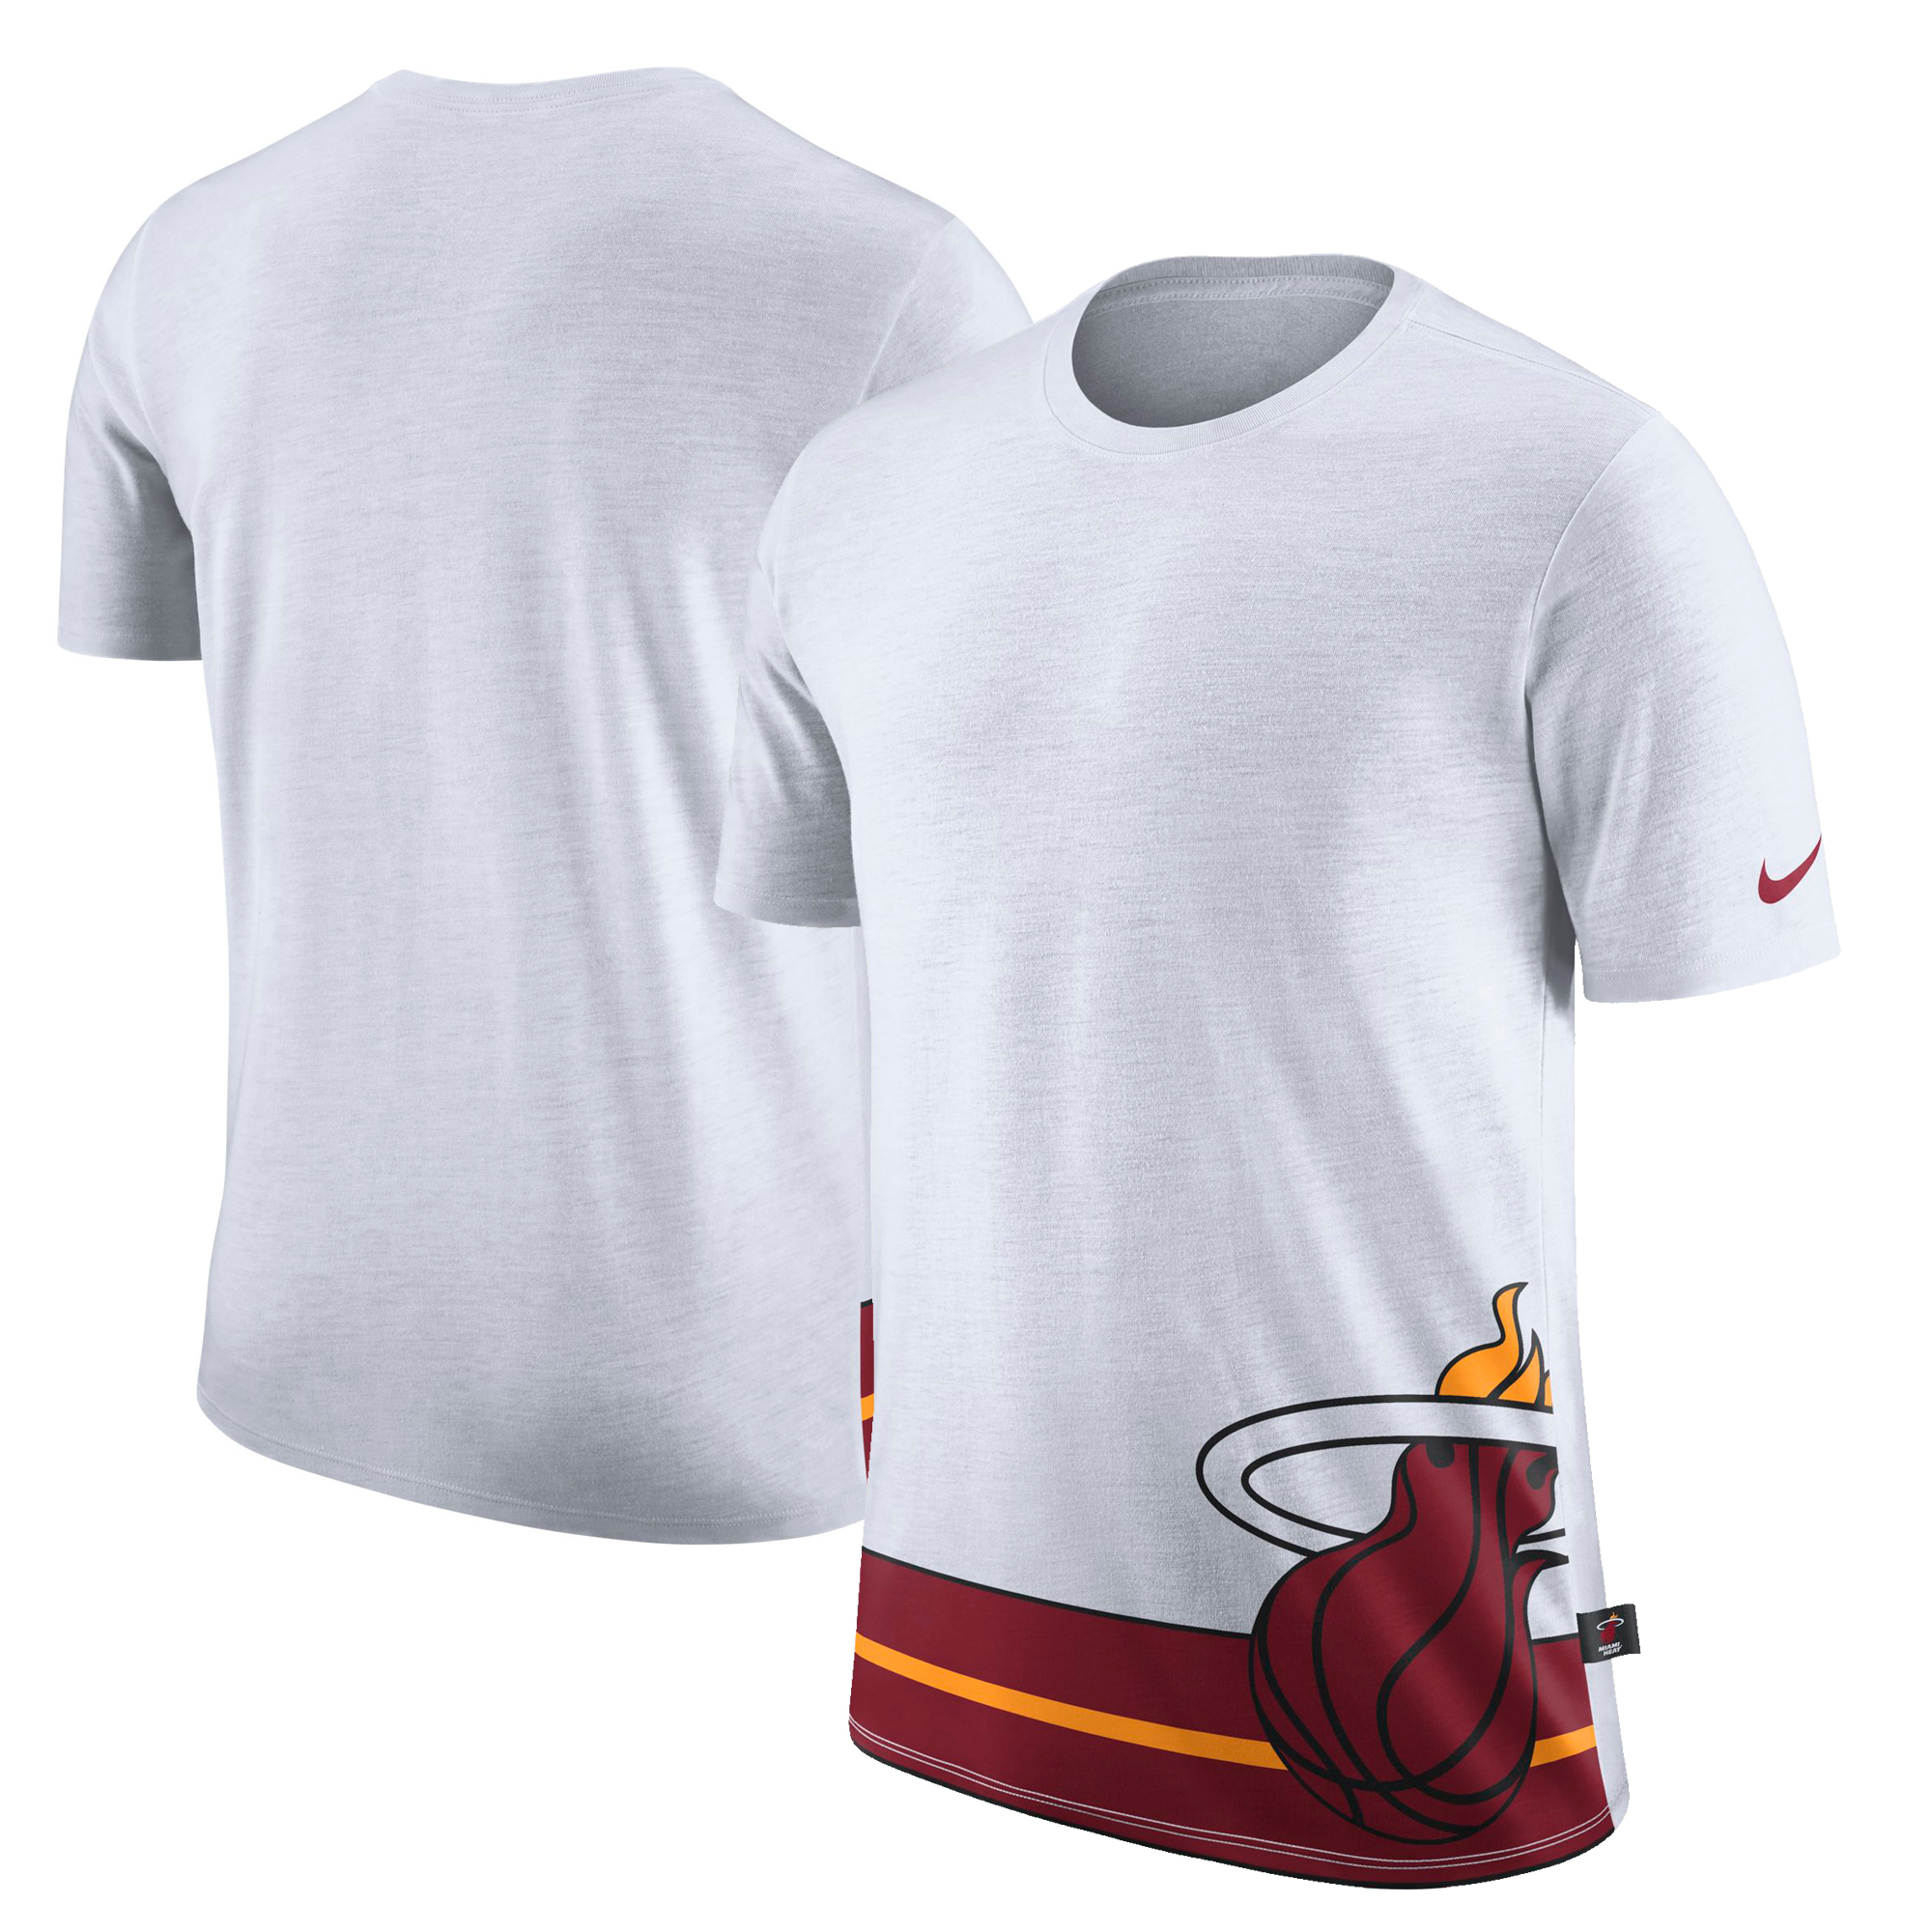 Miami Heat Nike DNA T-Shirt - White